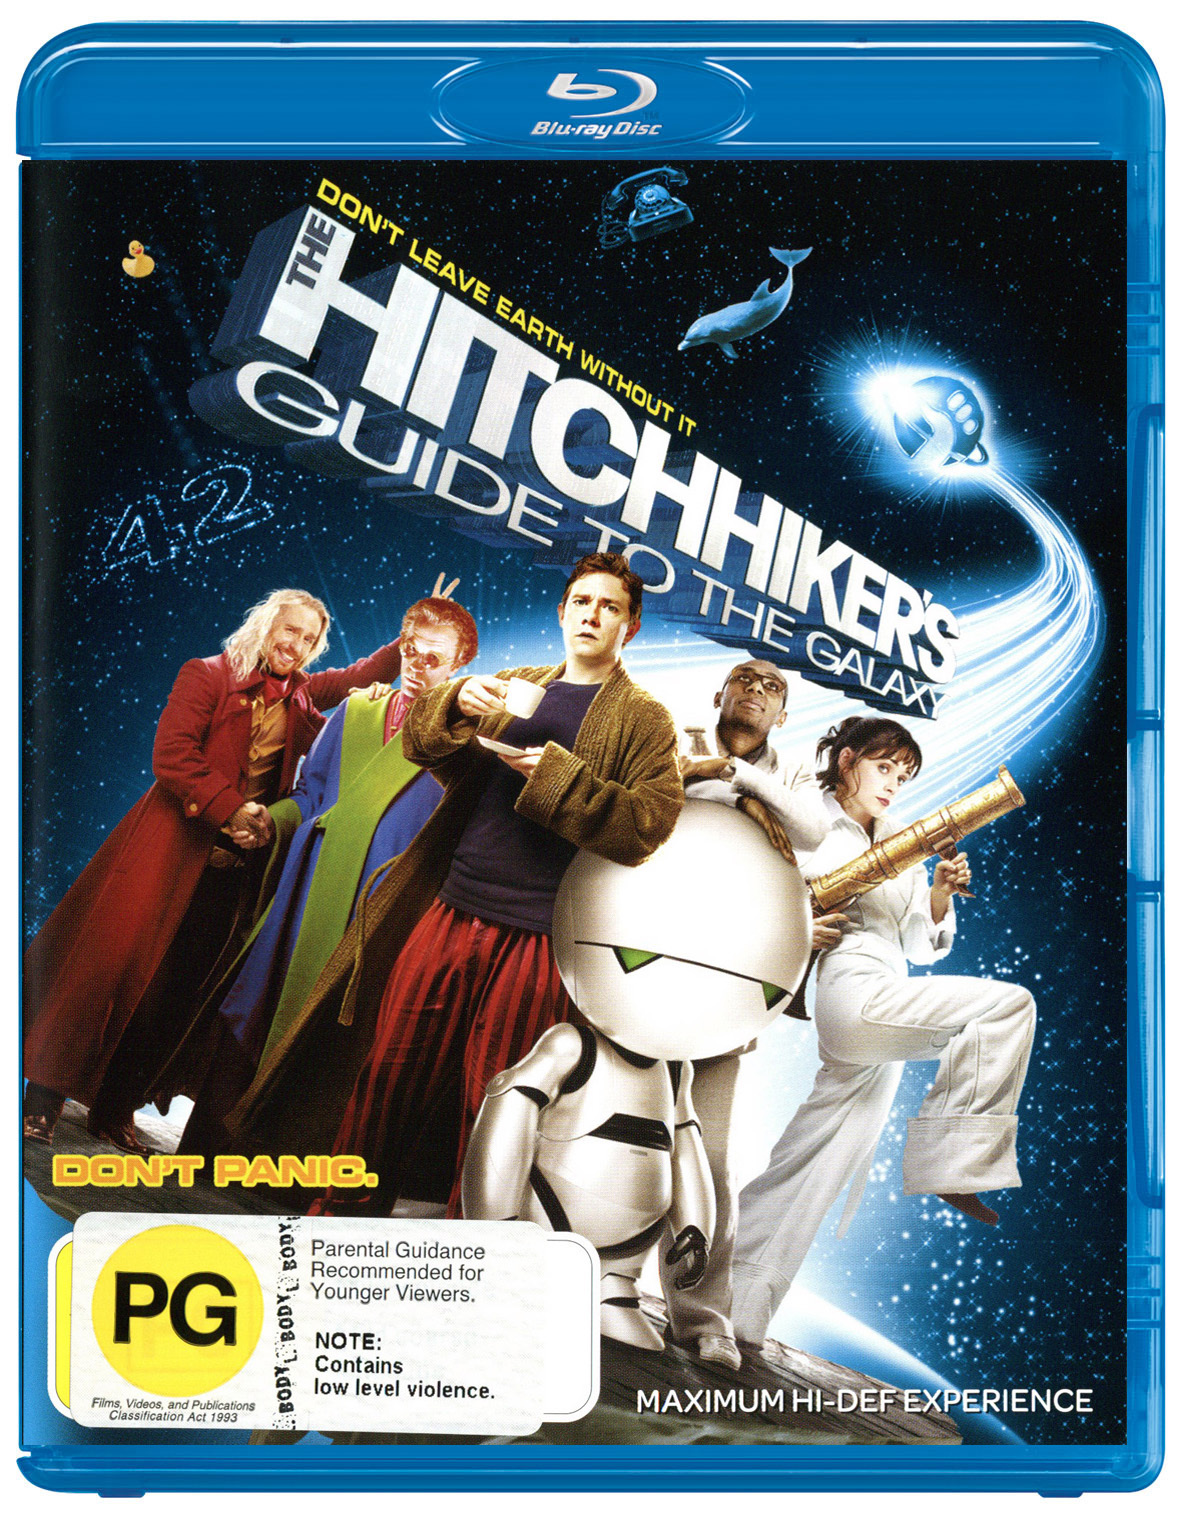 The Hitchhiker's Guide To The Galaxy on Blu-ray image